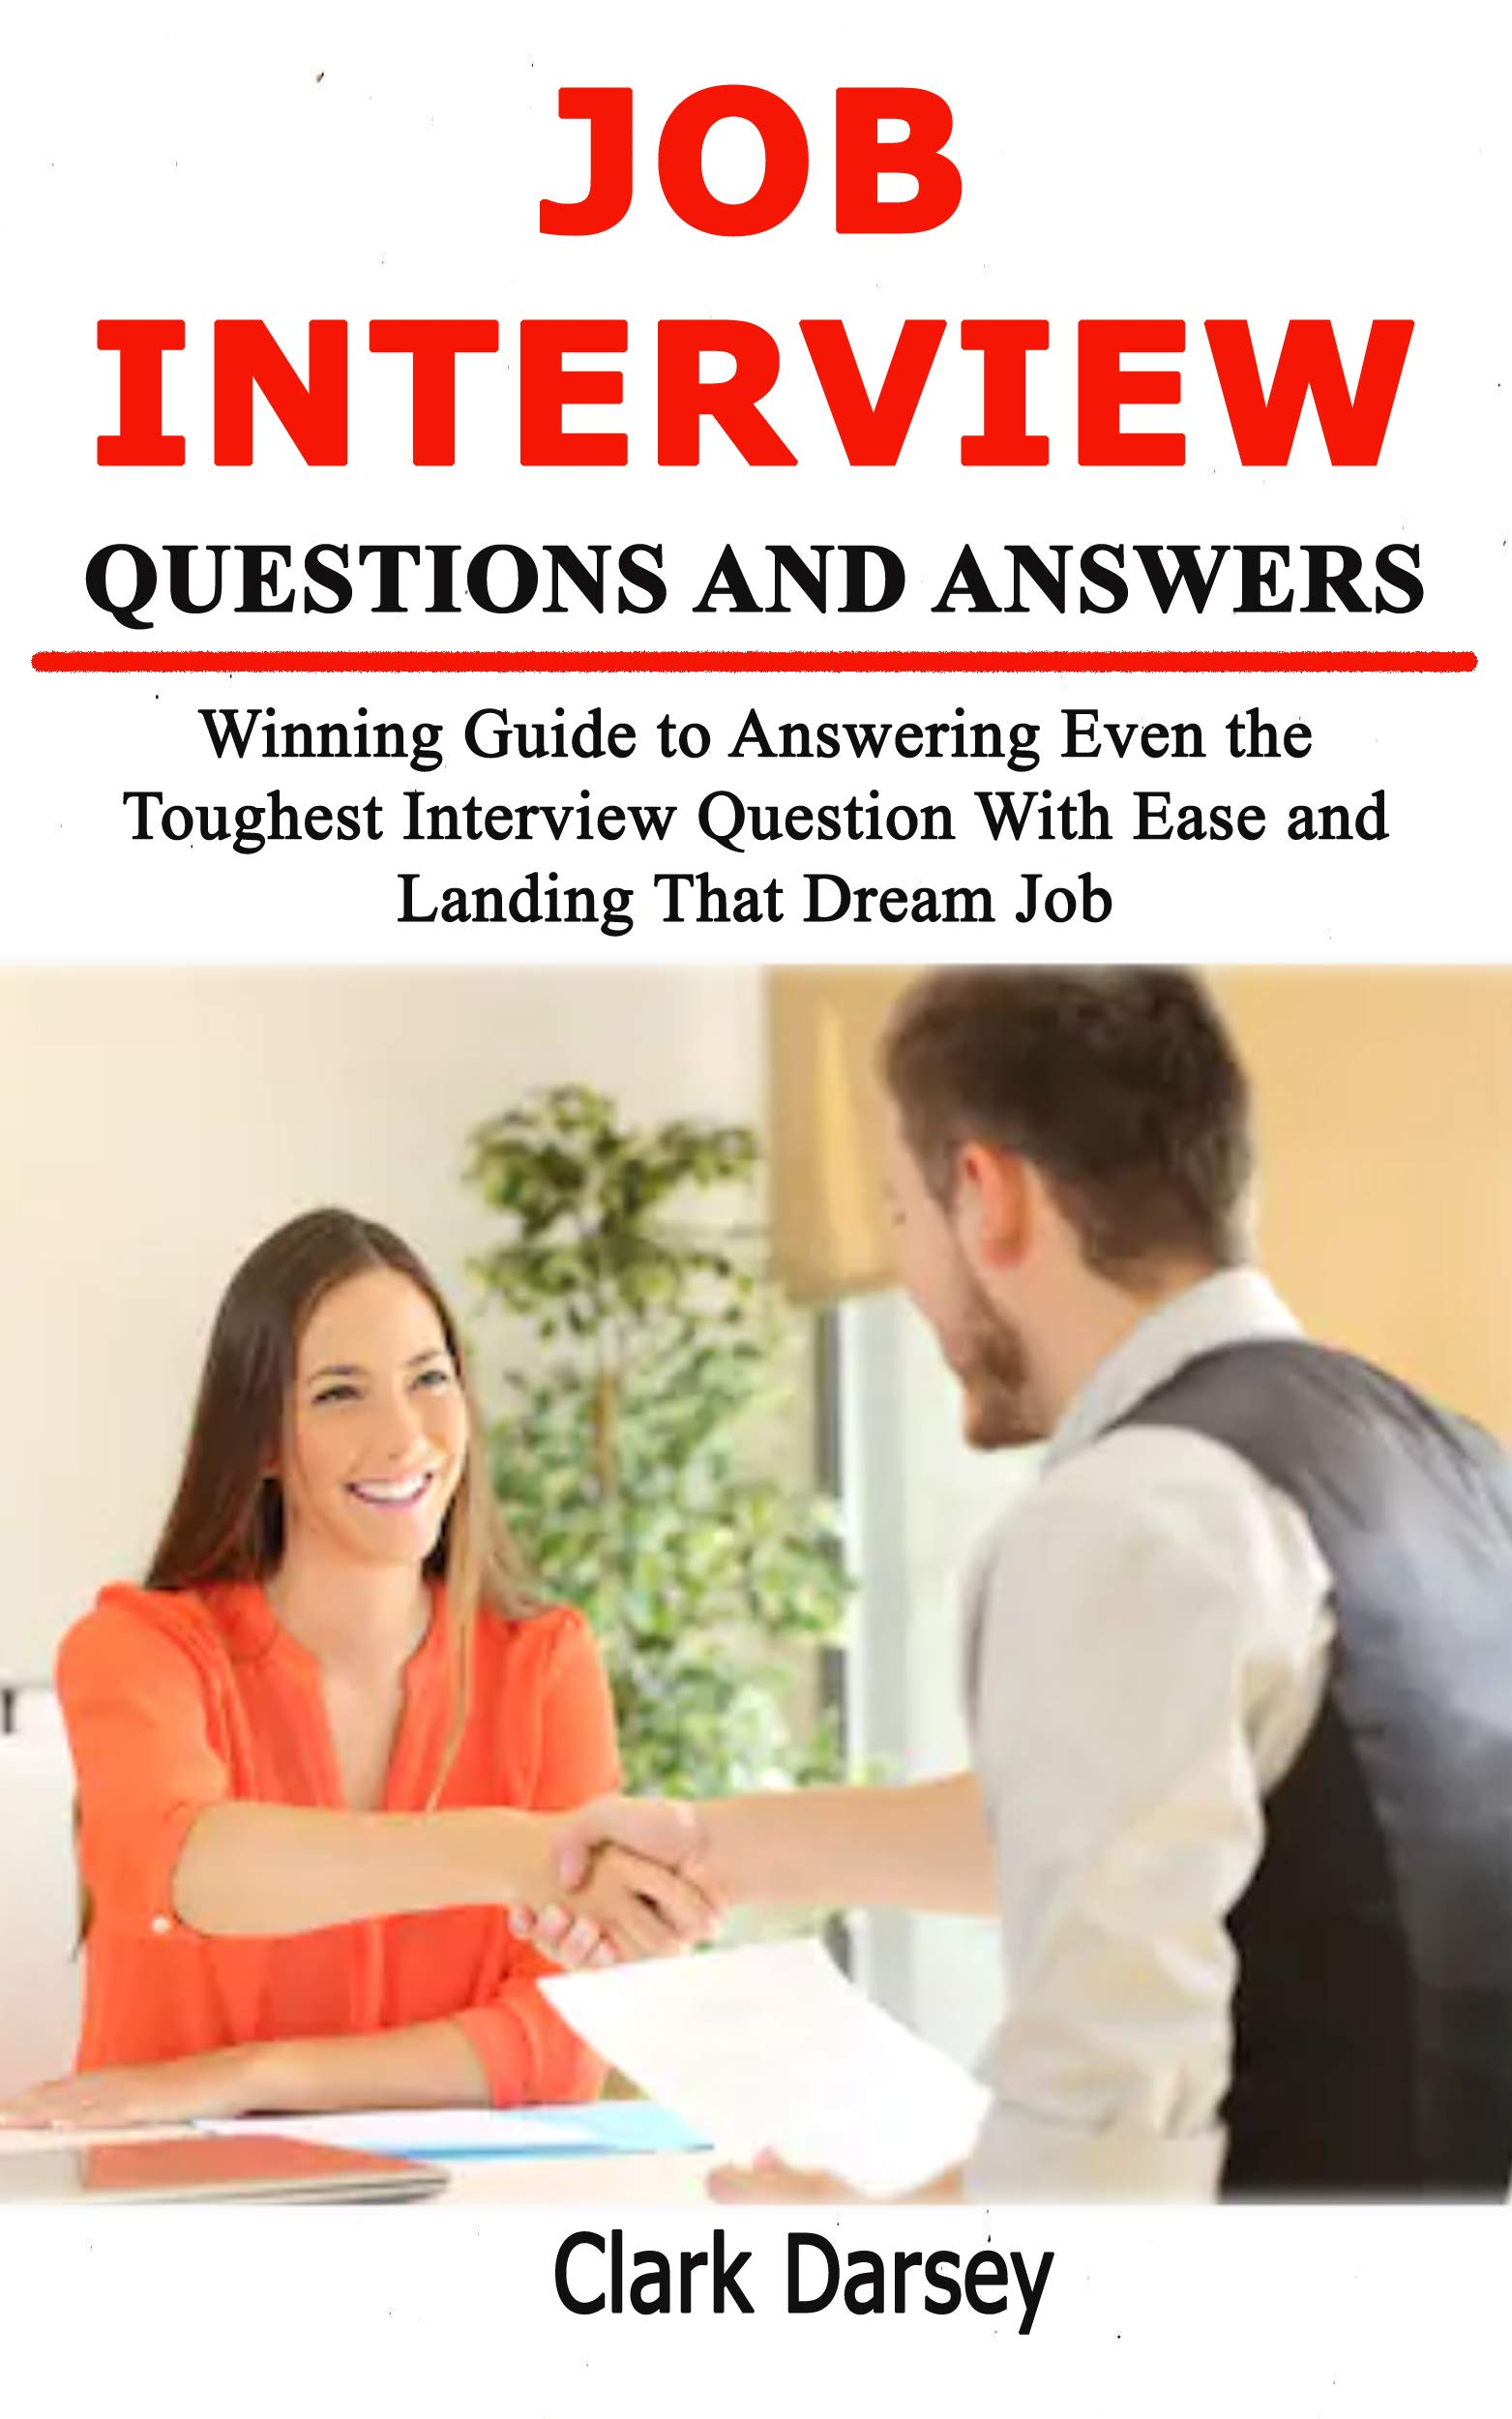 Job Interview Questions and Answers: Winning Guide to Answering Even the Toughest Interview Question With Ease and Landing That Dream Job